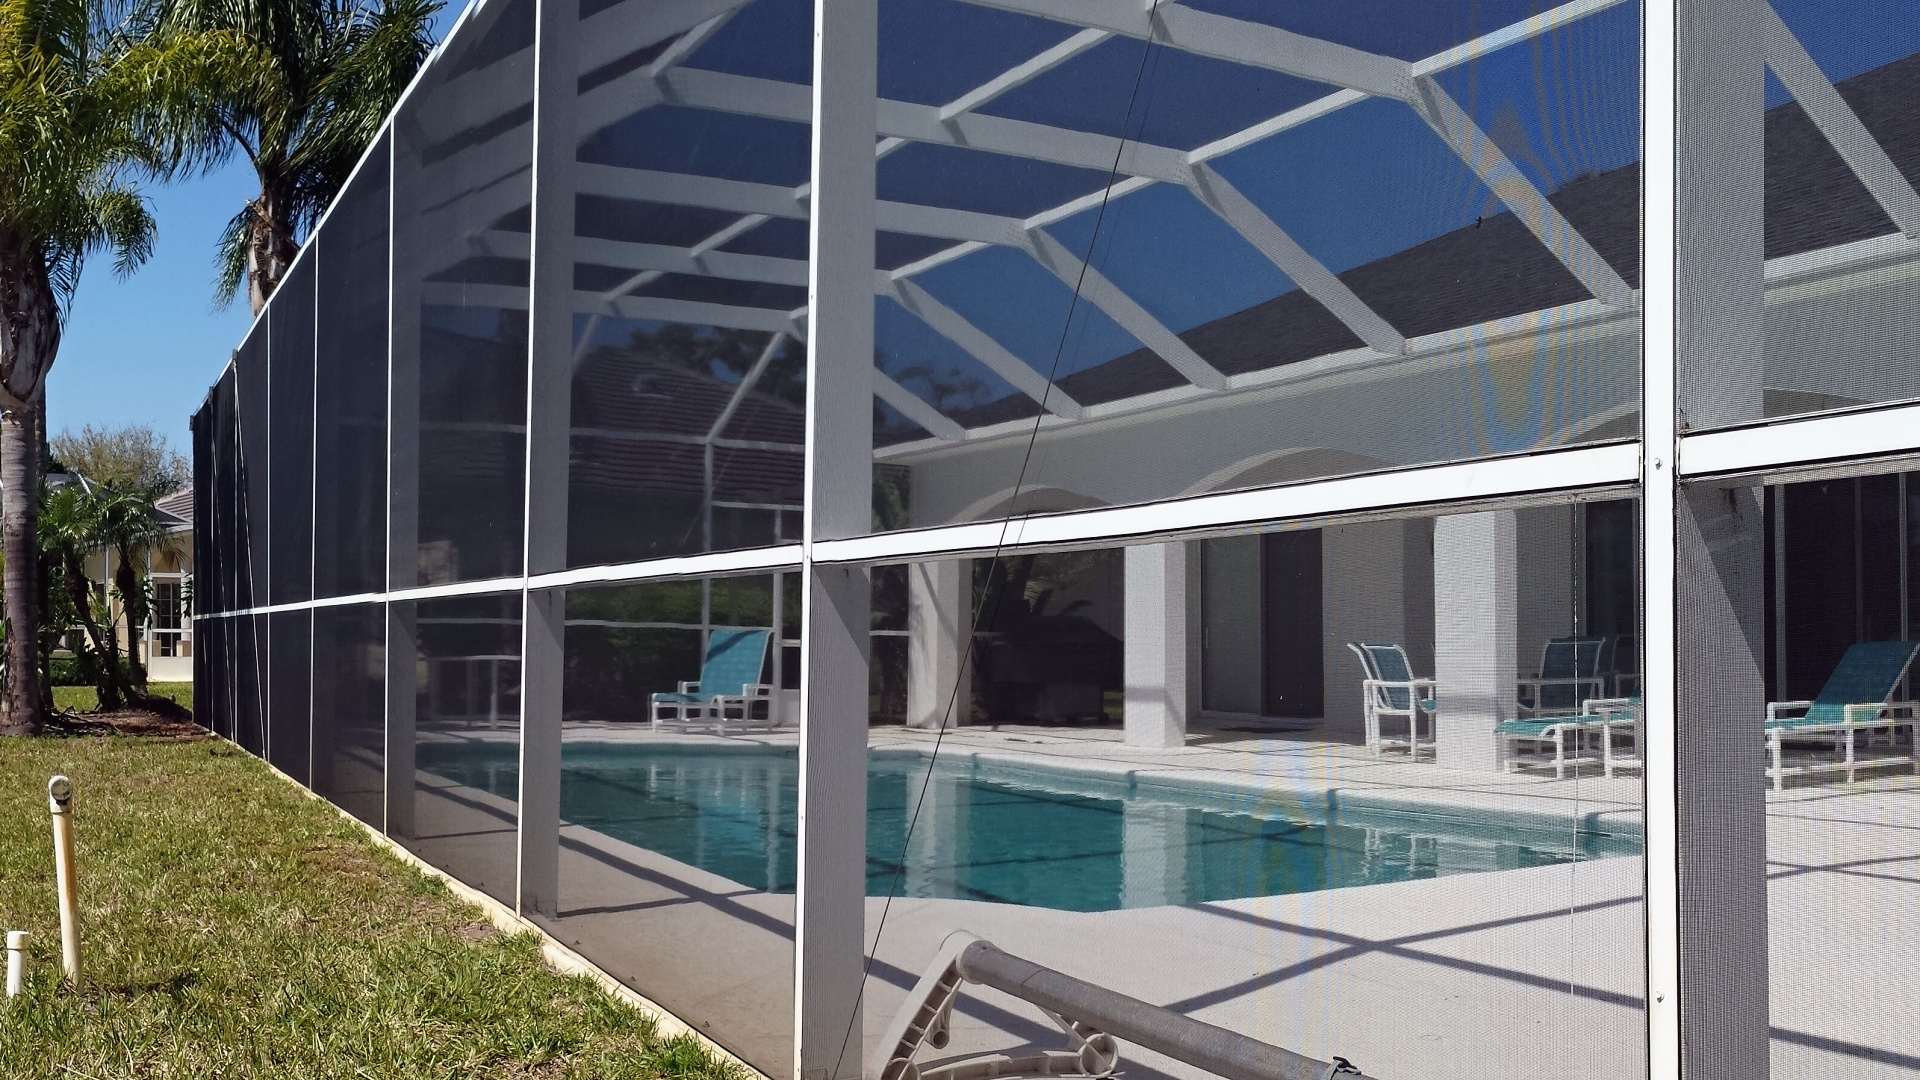 pool-screen-repair-ormond-beach-20-1080p.jpg